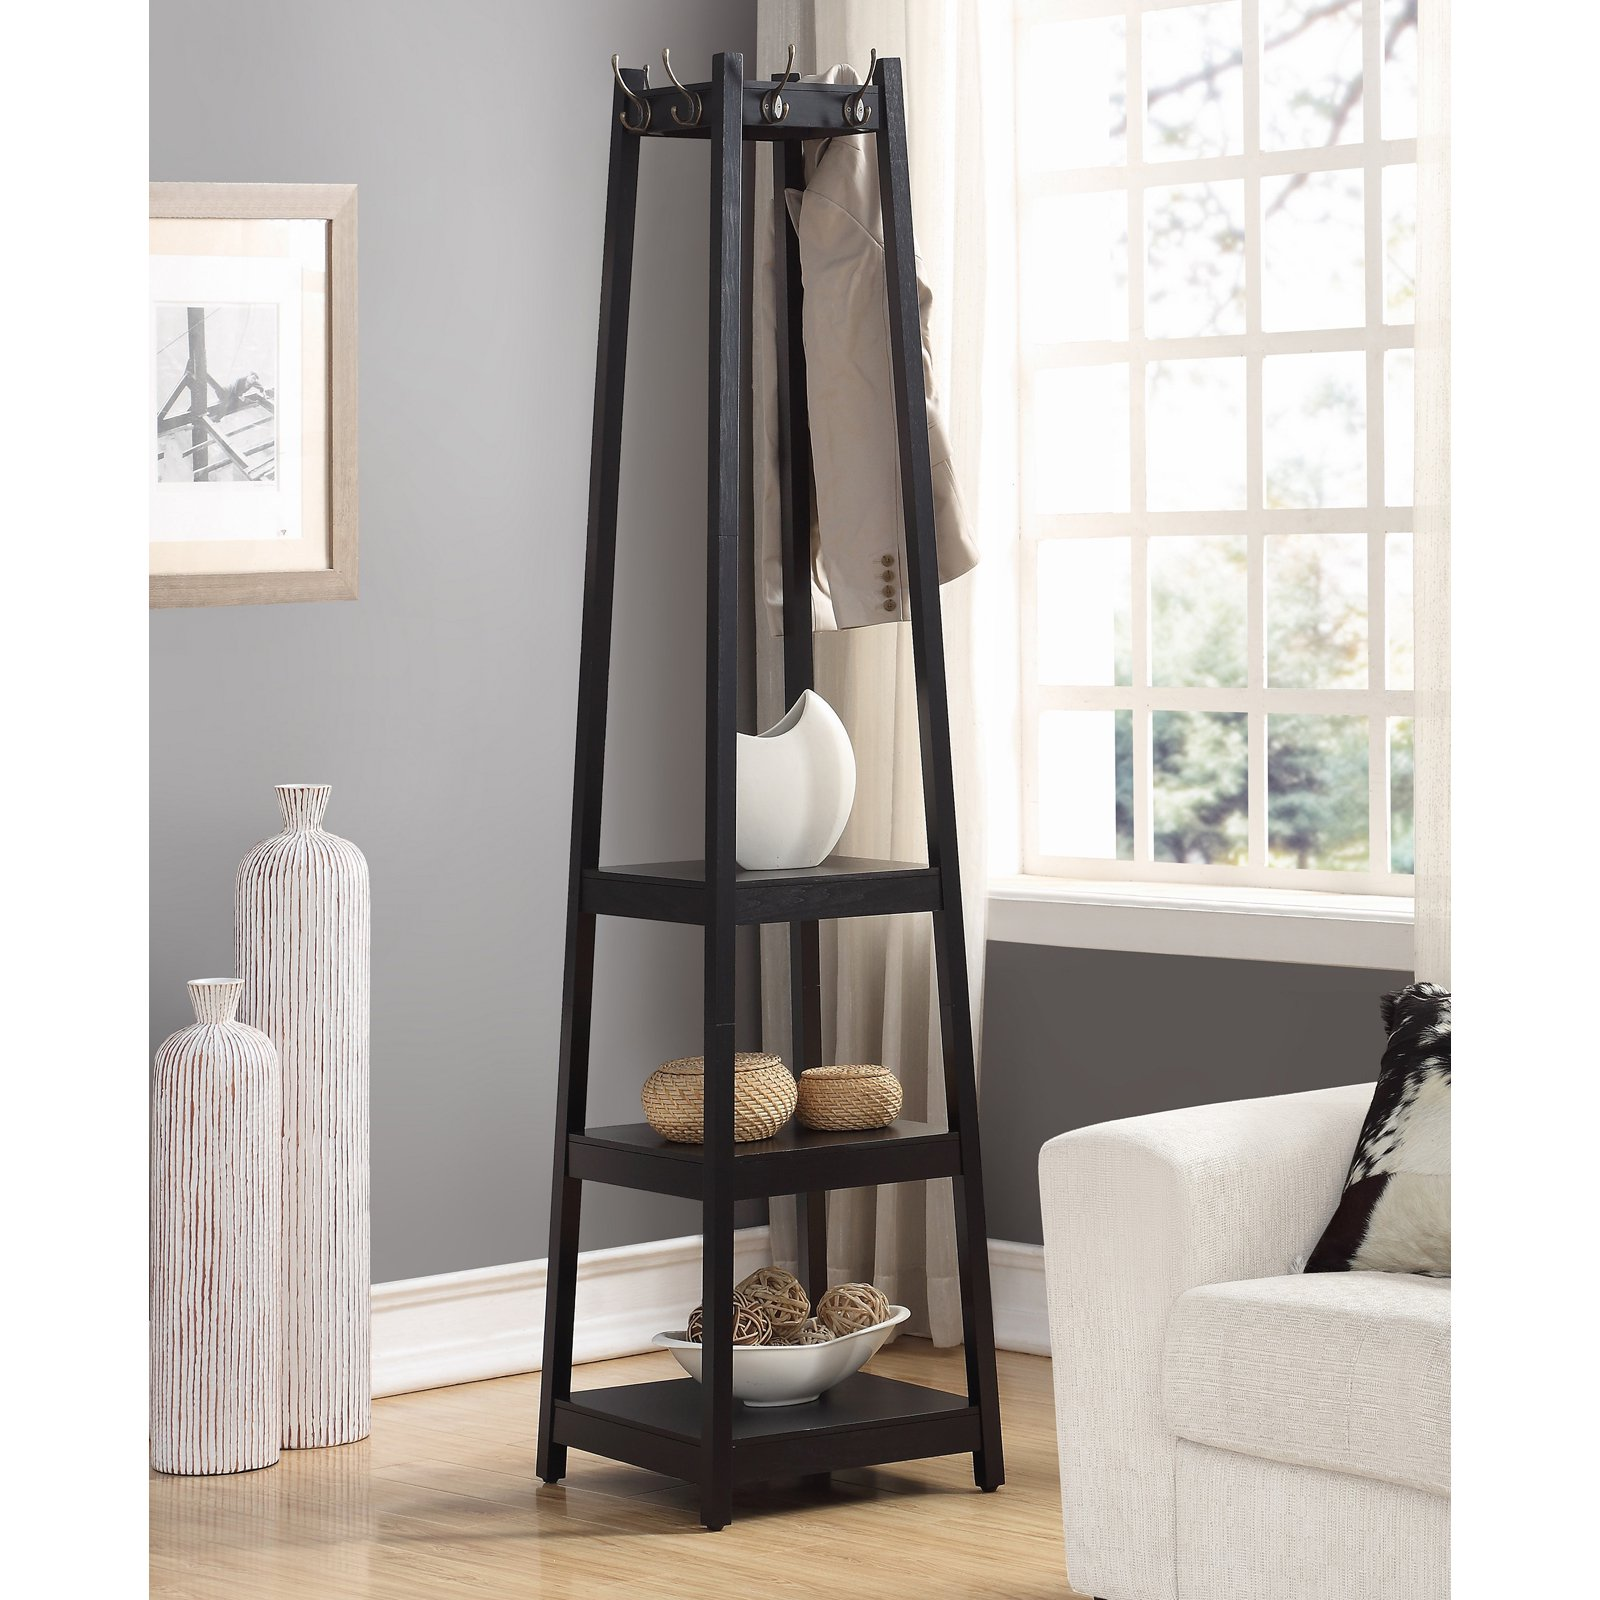 Roundhill Furniture Vassen 3 Tier Storage Shelve Coat Rack